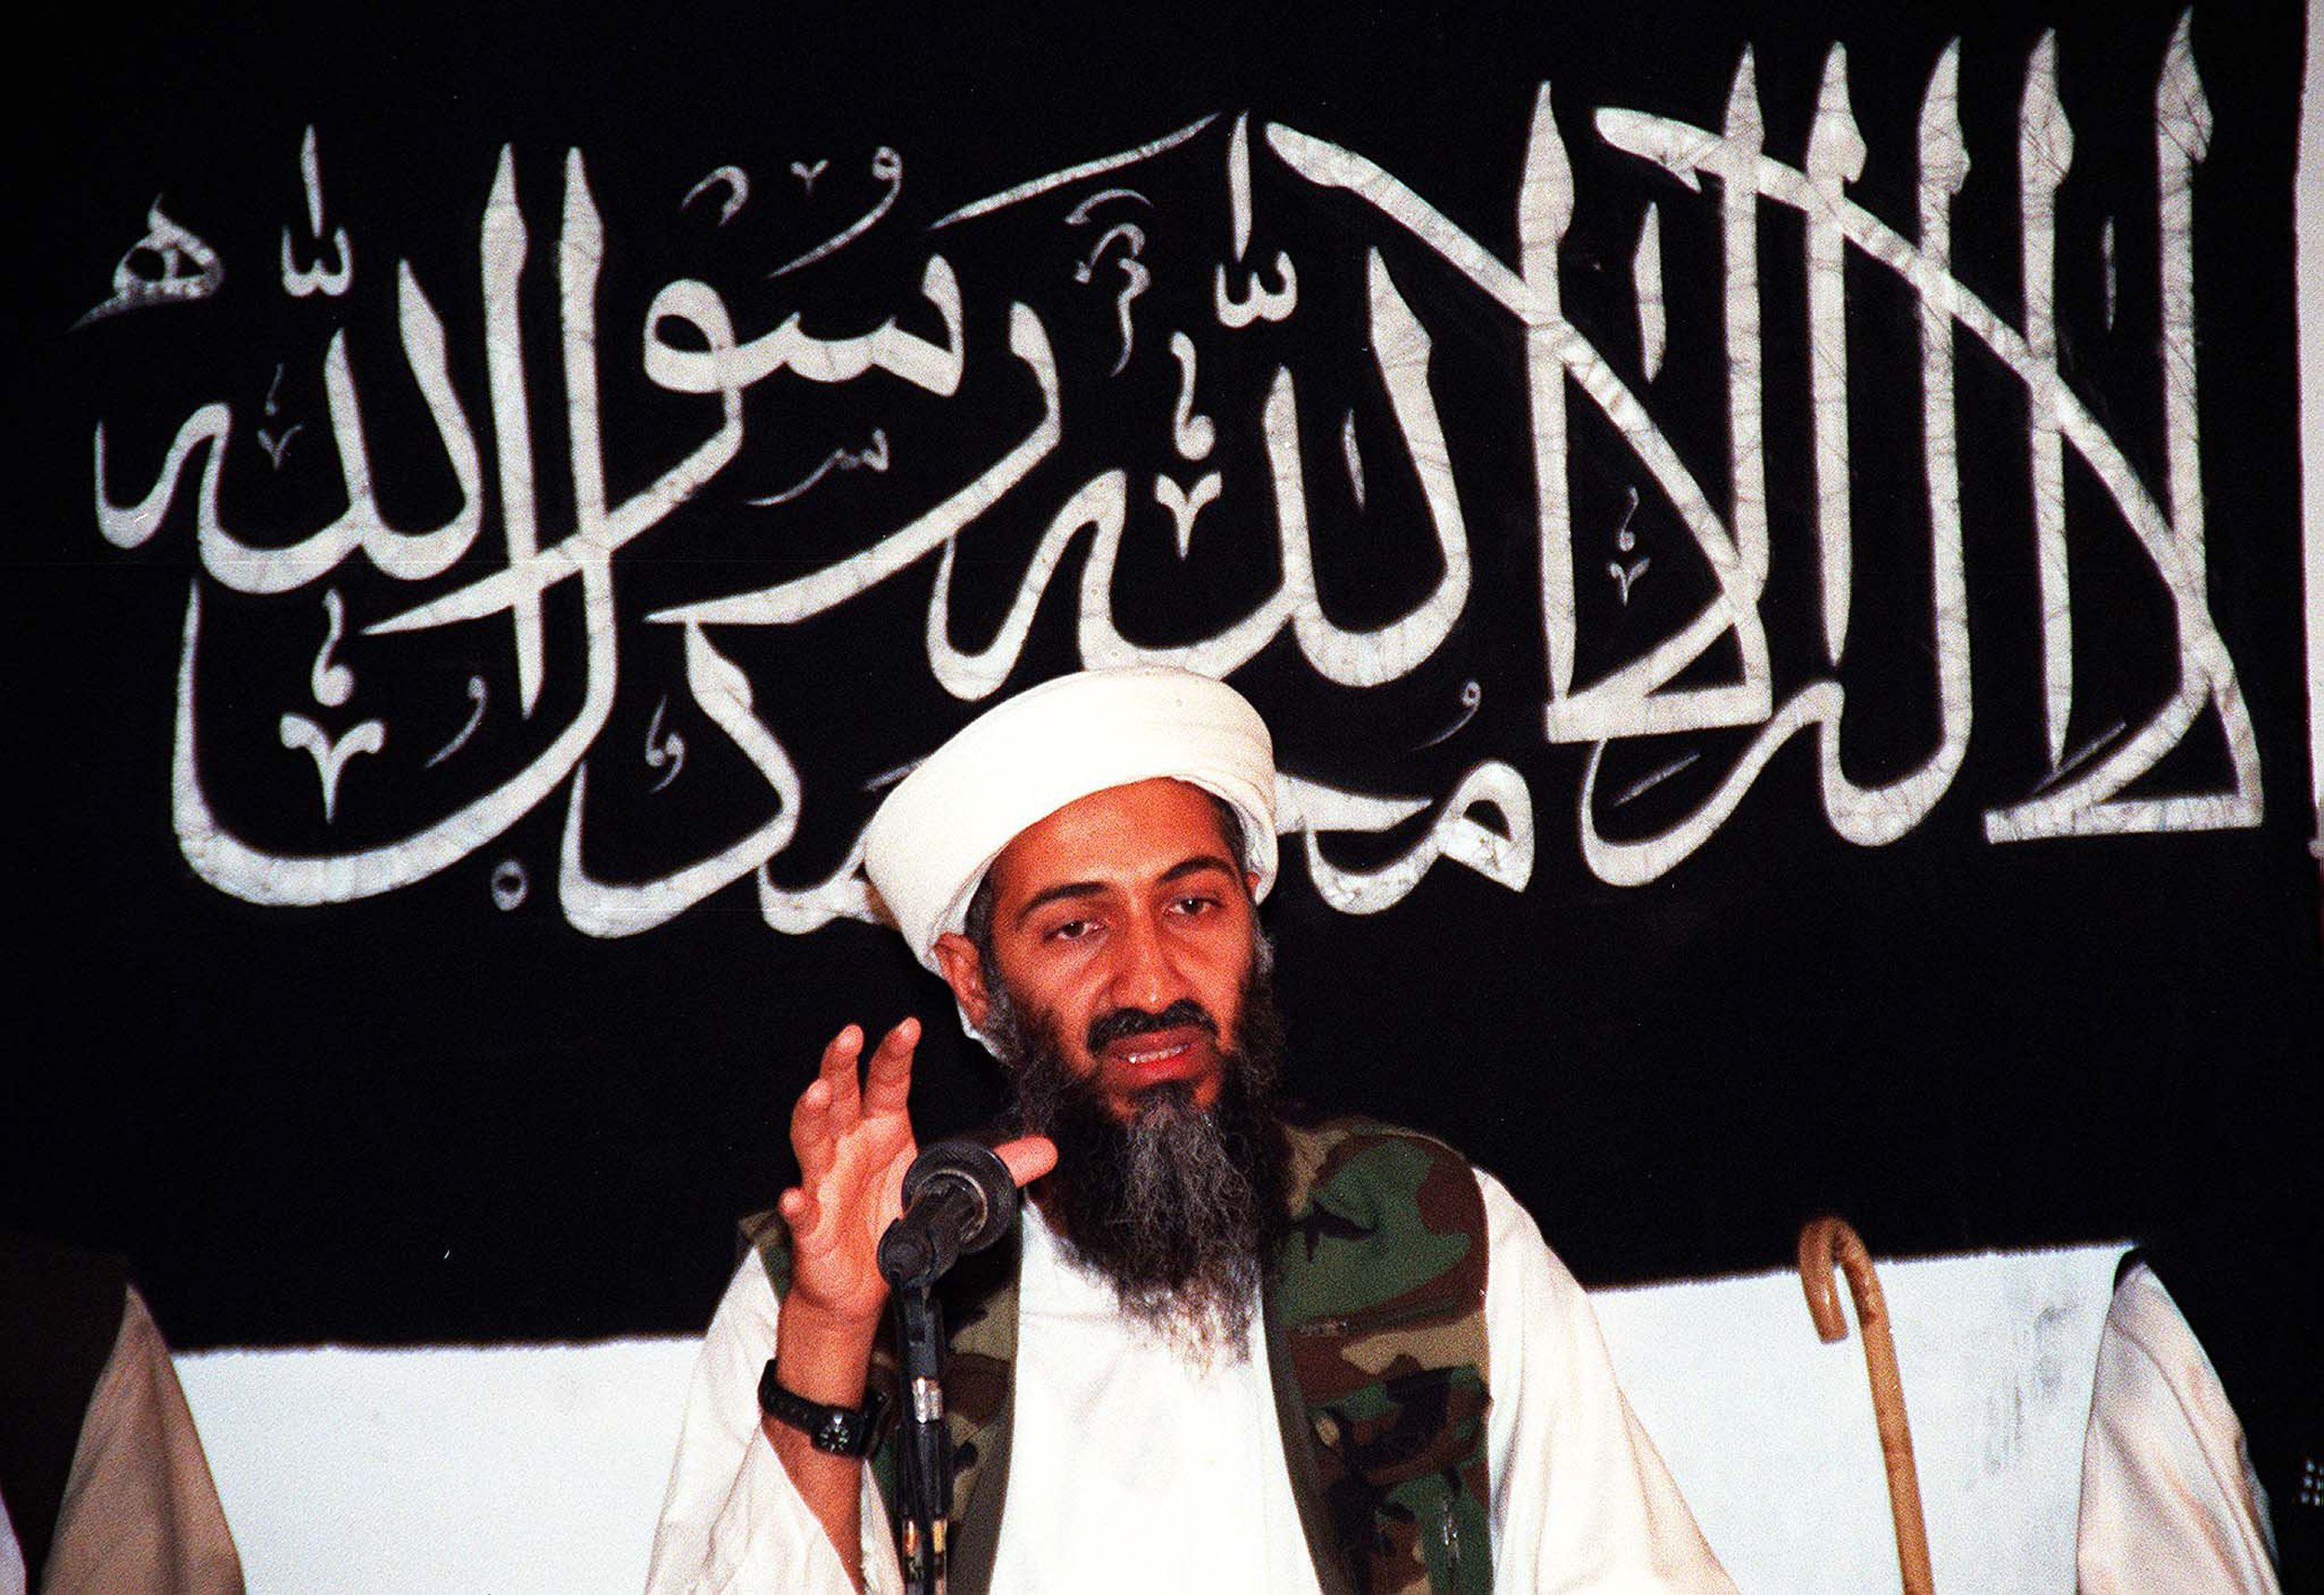 Osama Bin Laden Al-Qaeda ISIS Islamic State Middle East